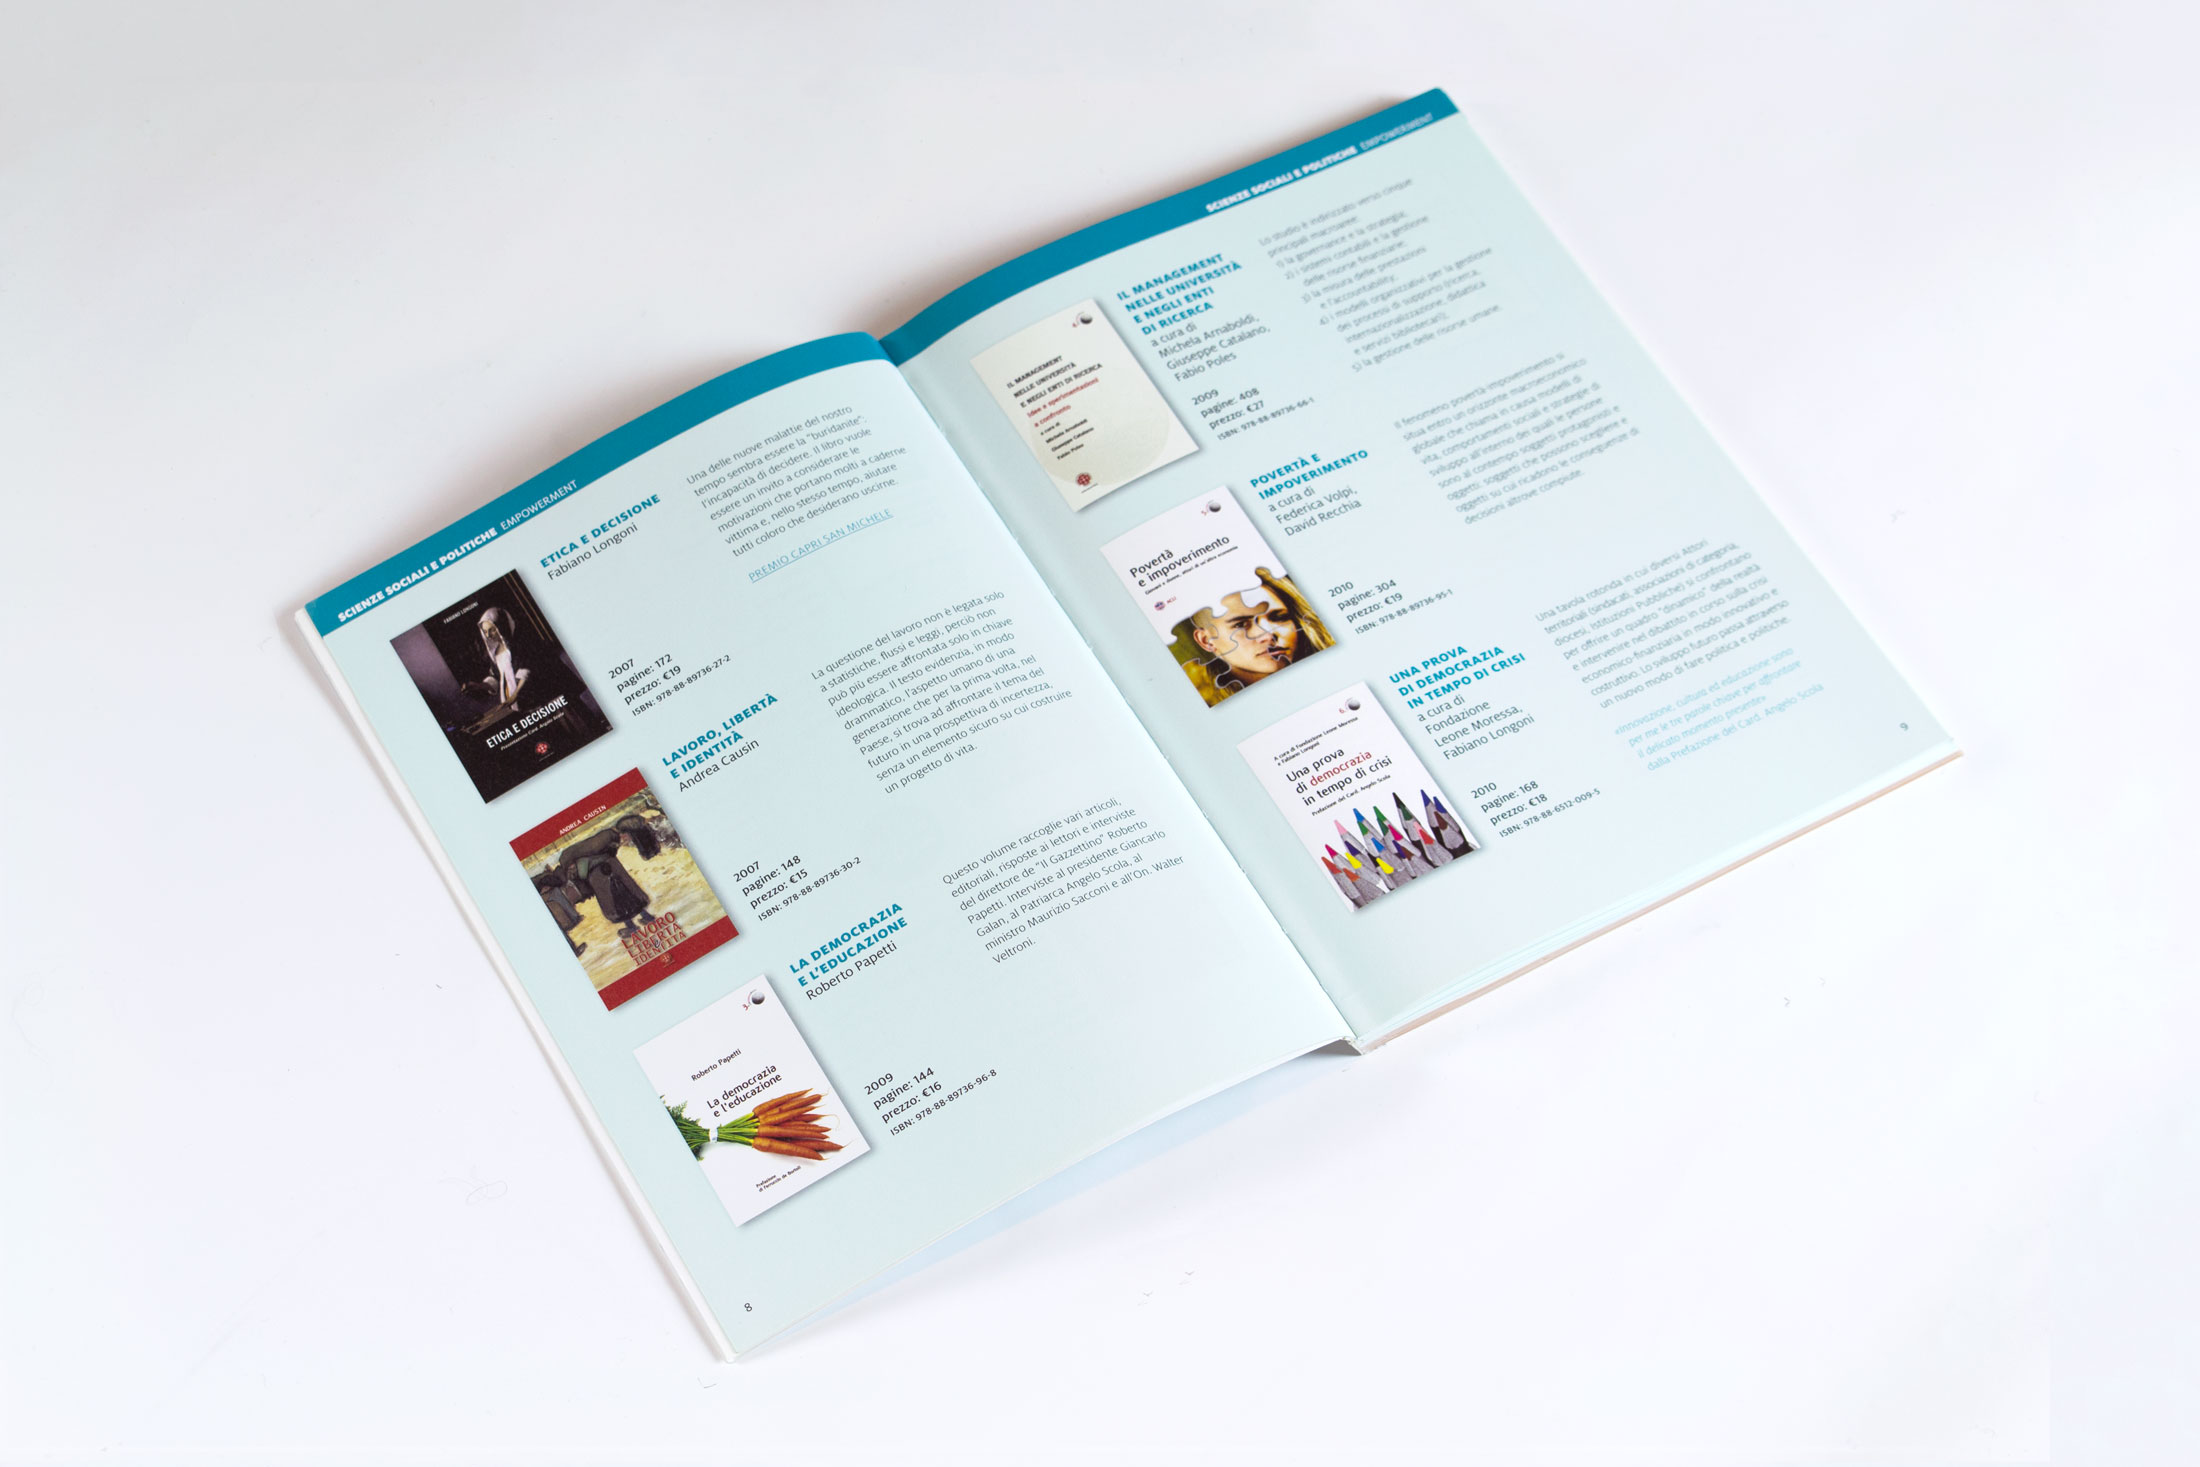 Catalogo Marcianum Press - interno 2